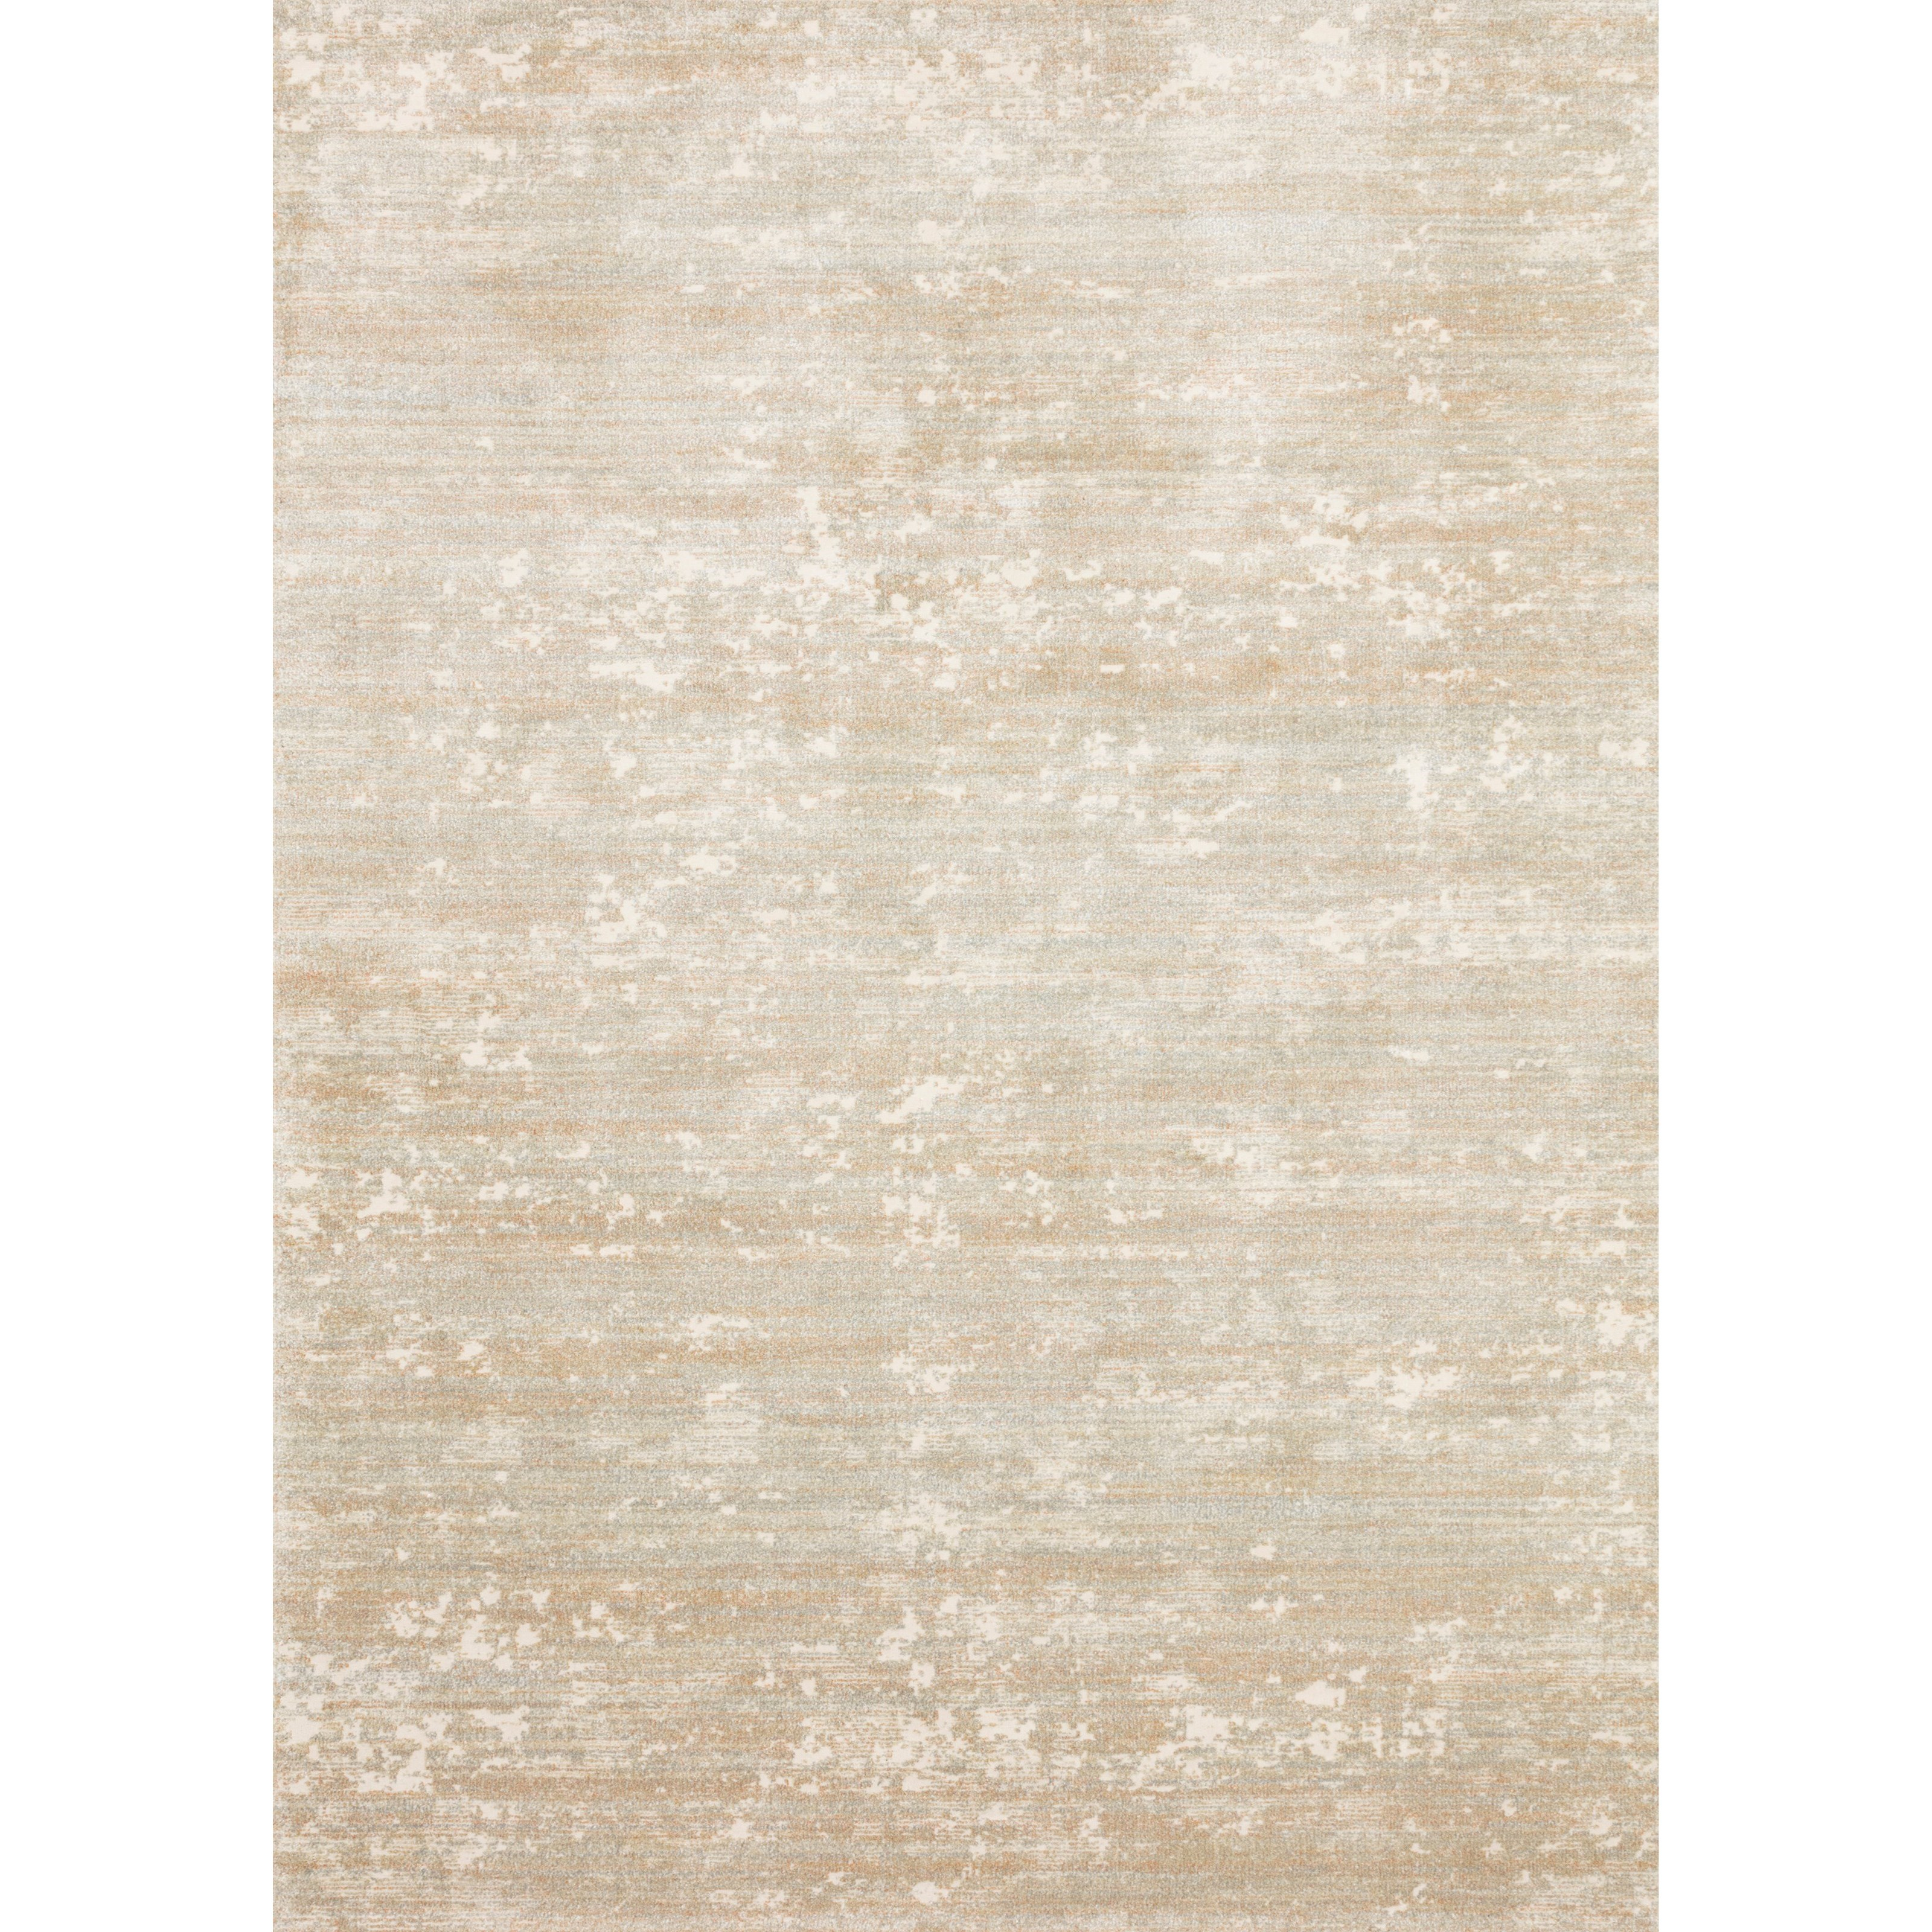 """Augustus 9'6"""" x 13' Sunset / Mist Rug by Loloi Rugs at Virginia Furniture Market"""